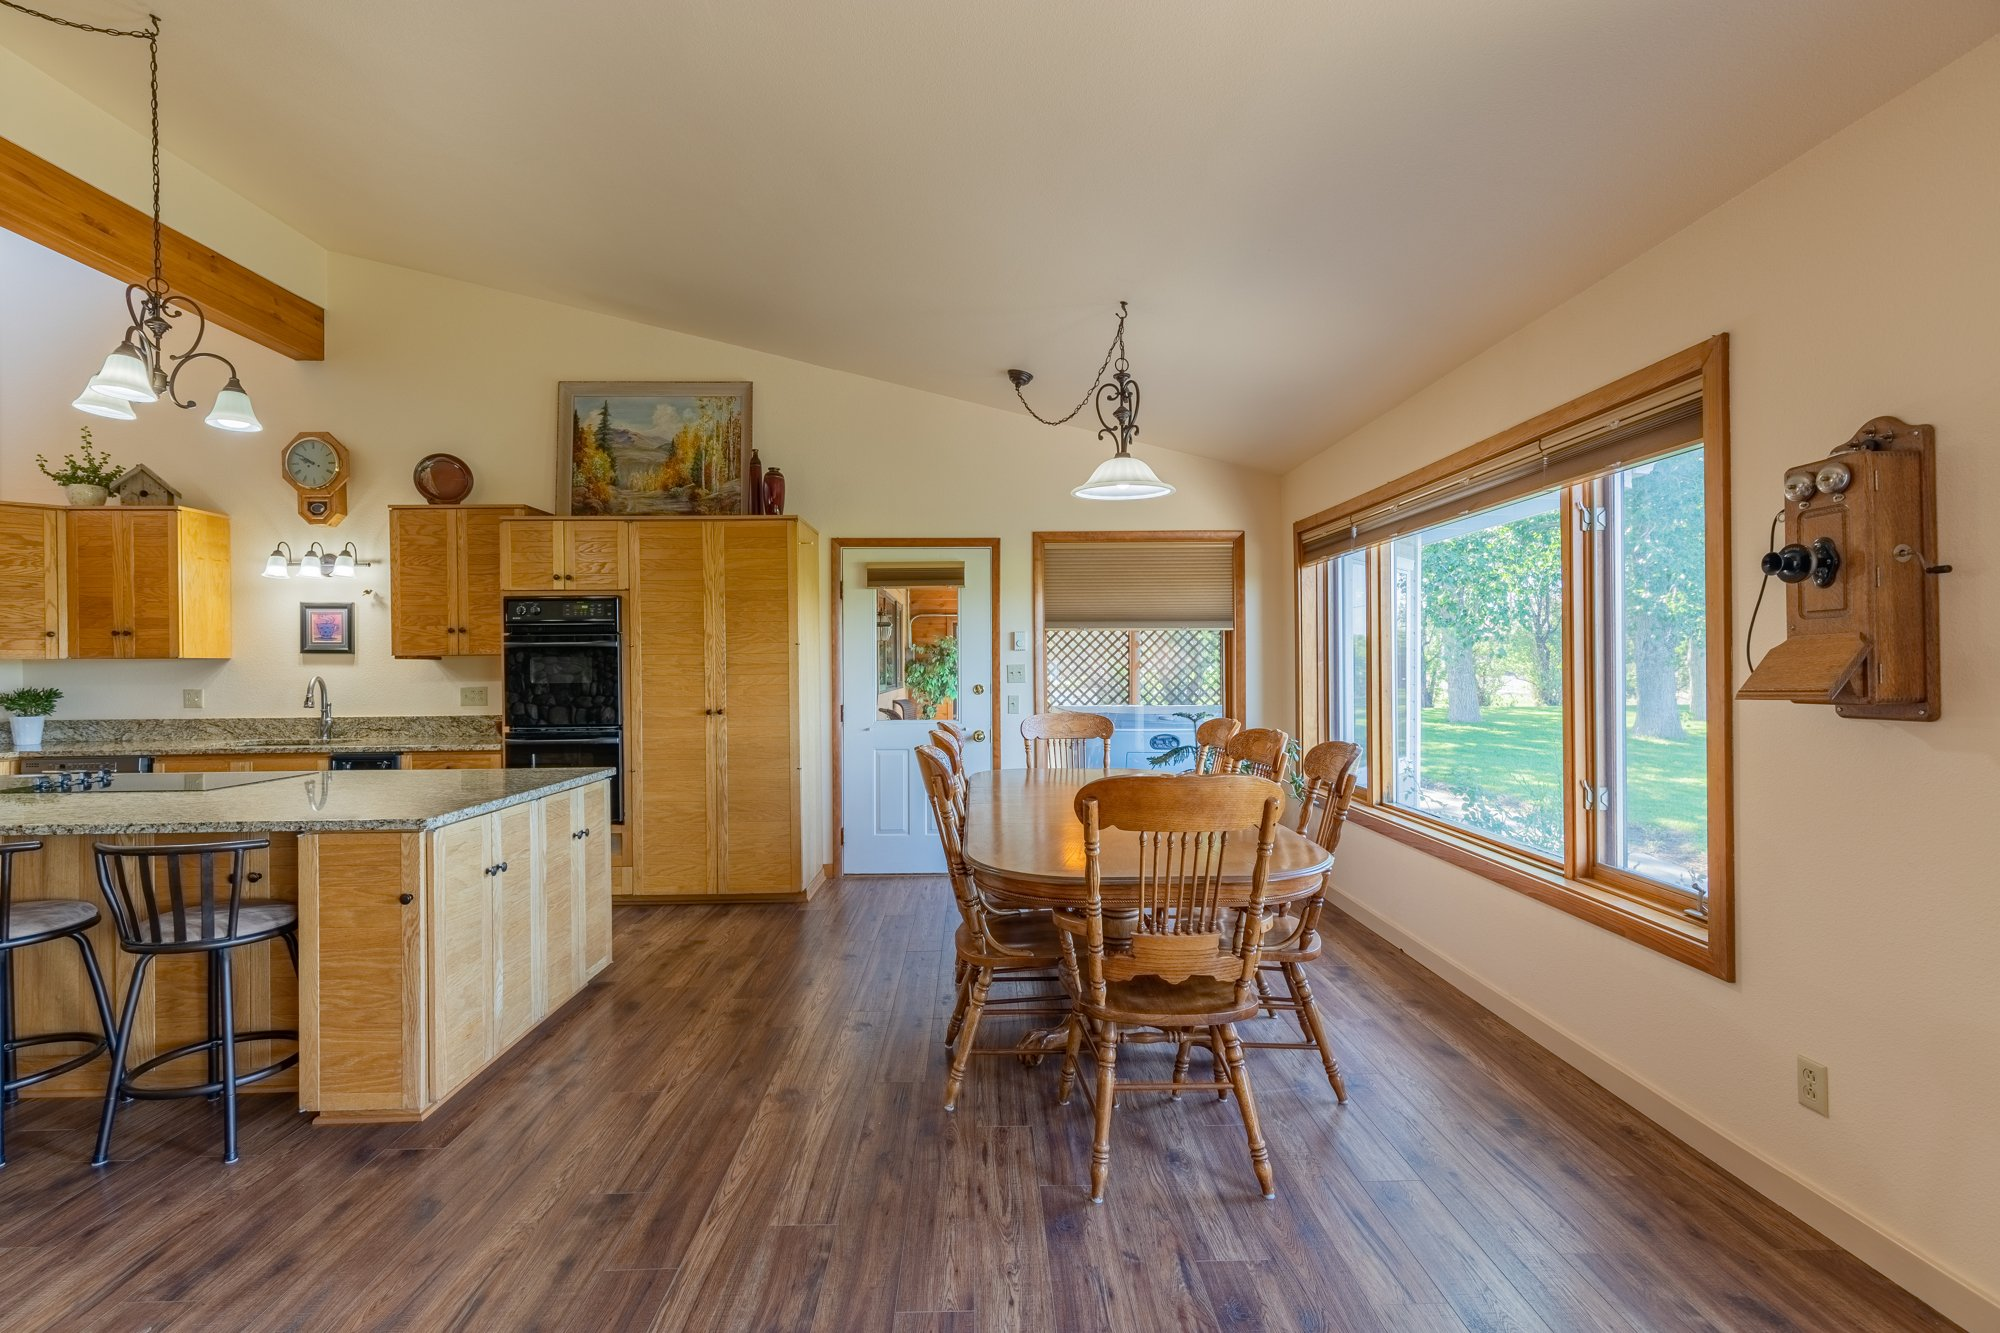 Kitchen Dining Area - 17777 6650 Rd Montrose, CO 81403 - Atha Team Country Real Estate